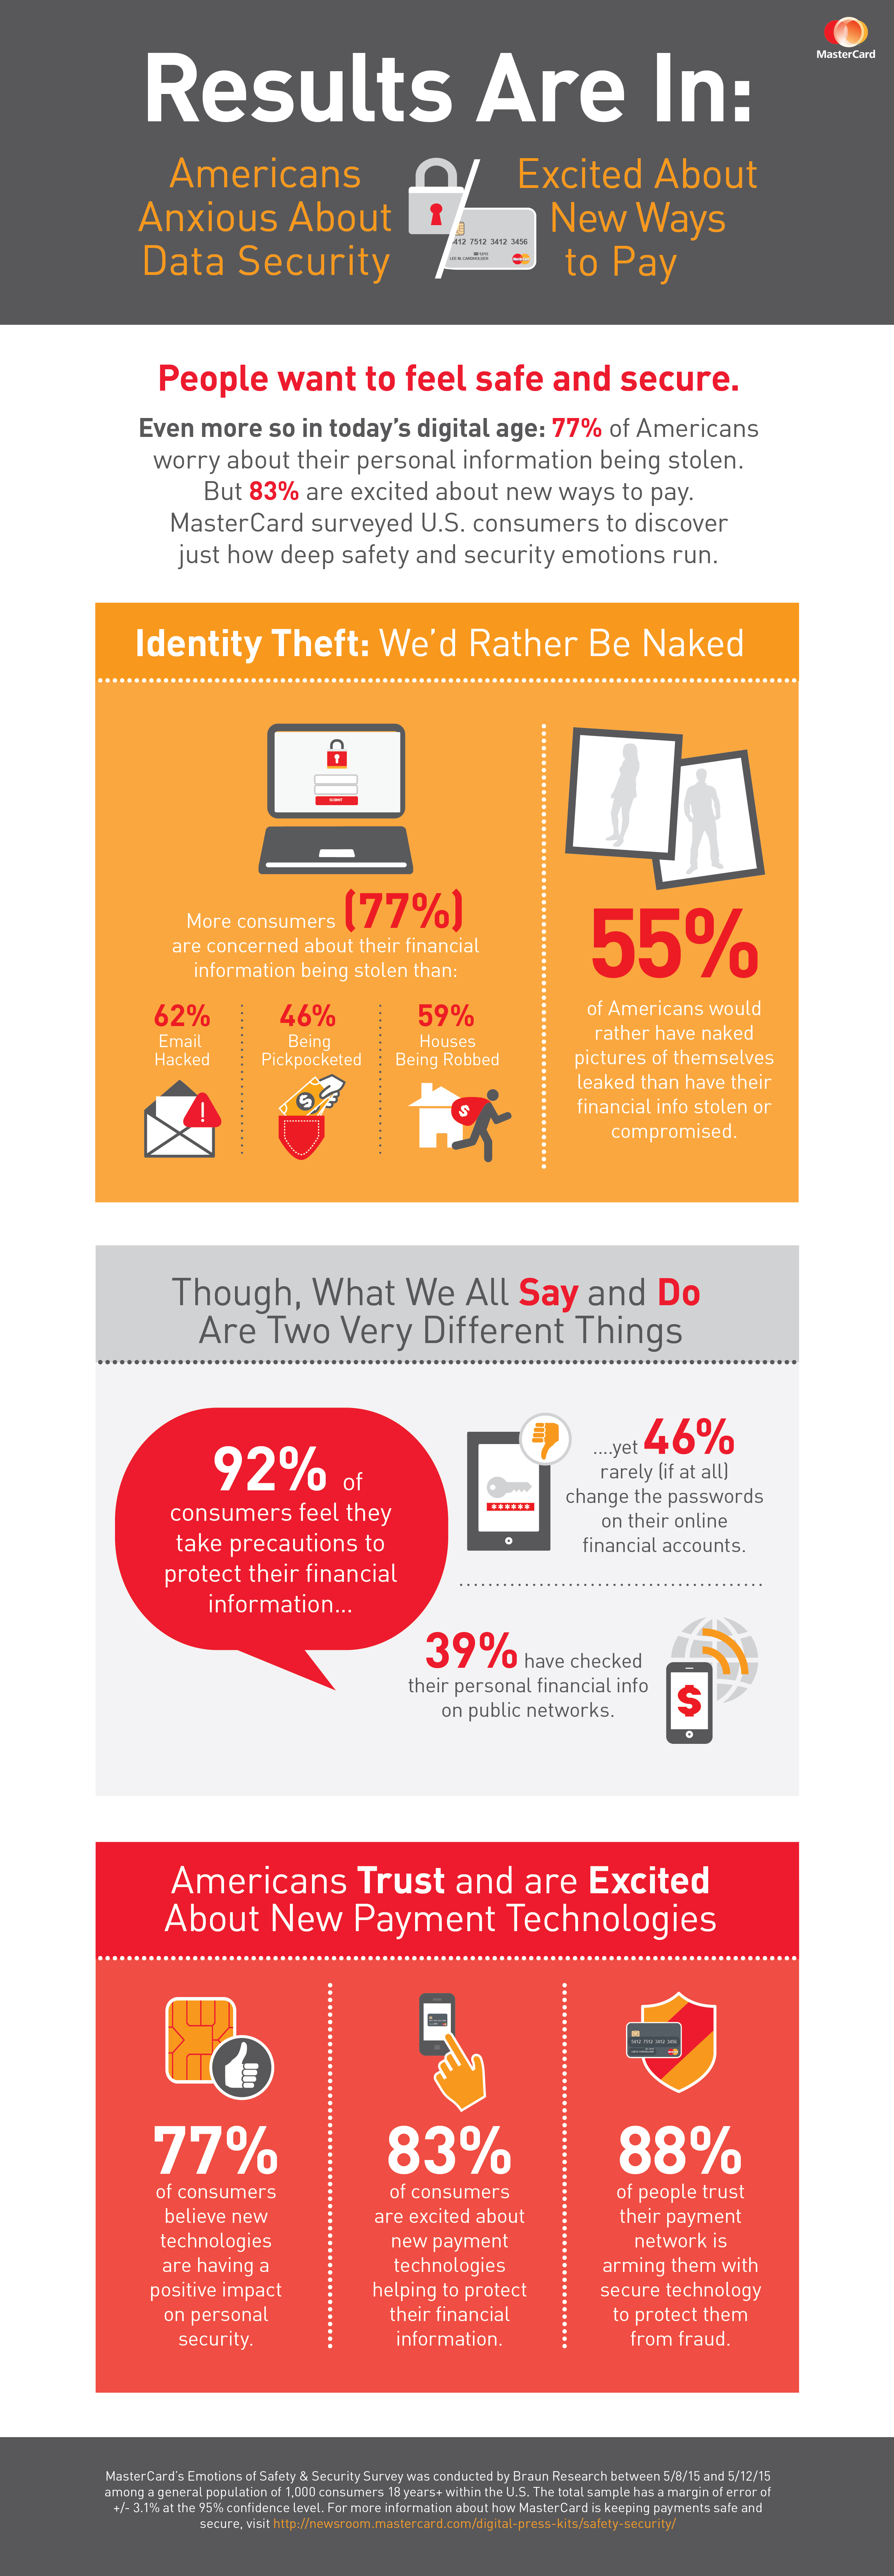 Infographic: MasterCard Survey Reveals Americans Trust and are Excited about New Payment Tech